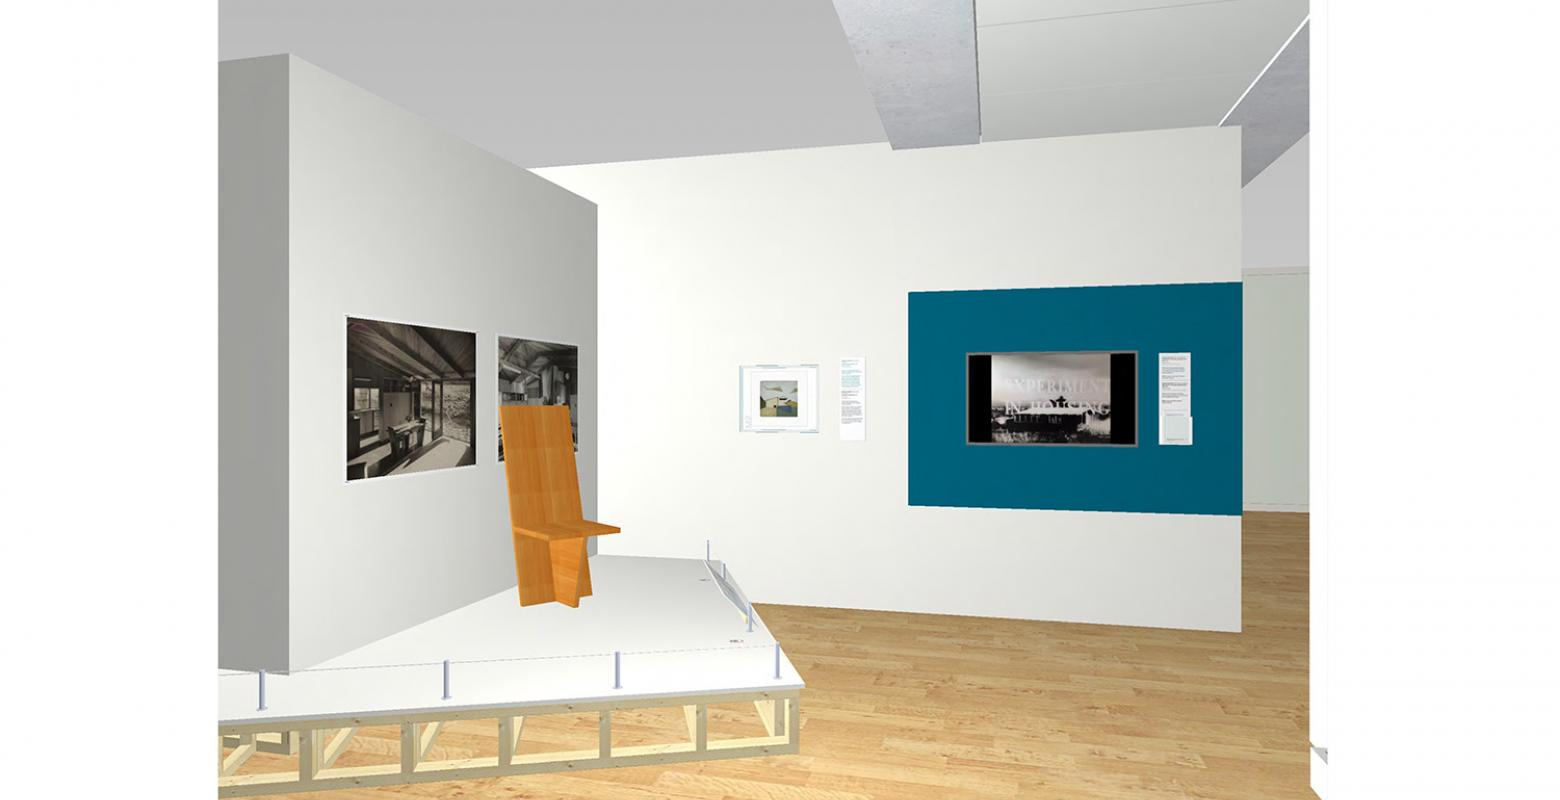 Computer drawing of an exhibition space